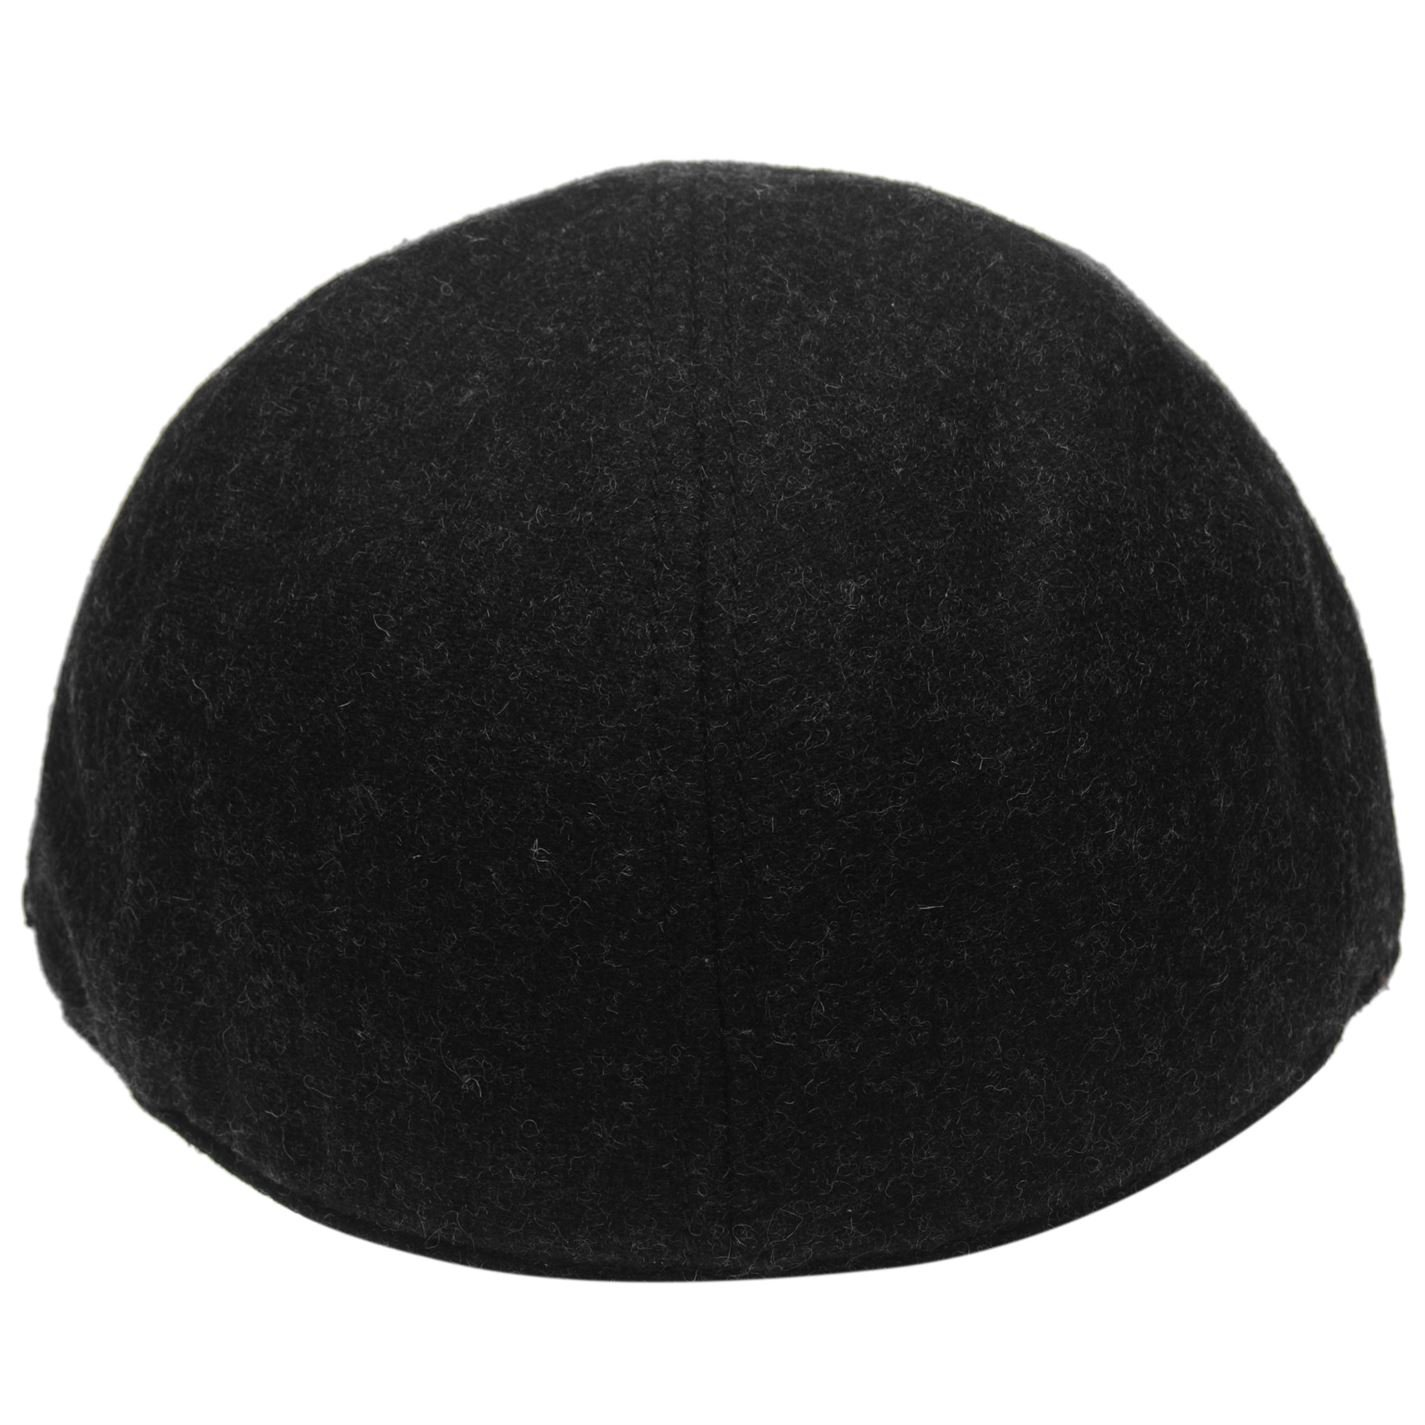 f16d28e9 Firetrap Mens Mesa Gatsby Cap Covered Peak Polyester Wool Mens Black:  Amazon.co.uk: Clothing